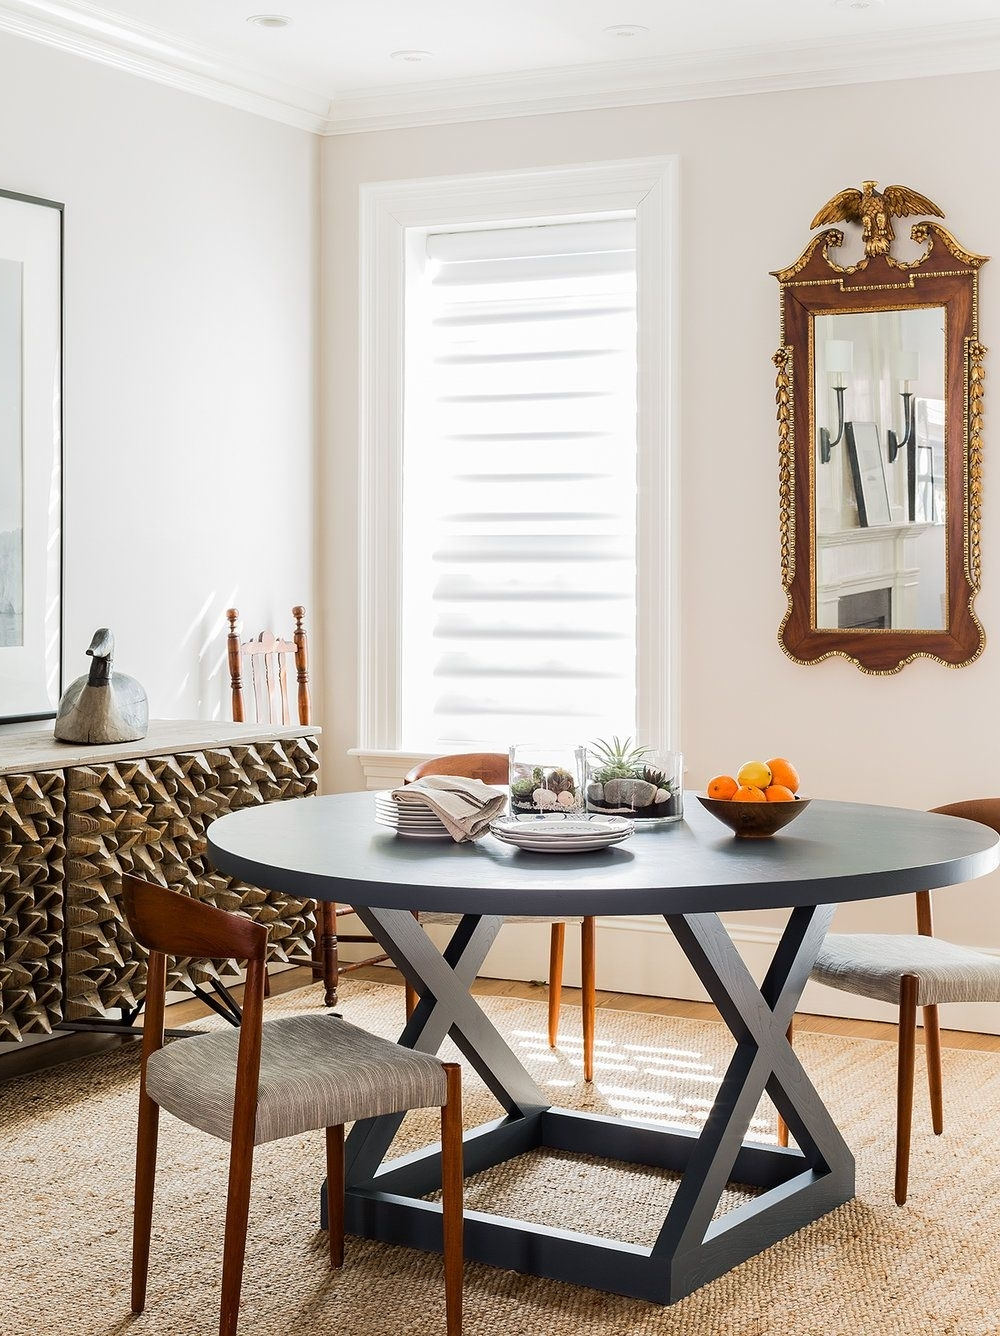 Most Recently Released Hudson Round Dining Tables Inside Round, Navy Dining Table Perfect For Small Spaces And Families (View 23 of 25)